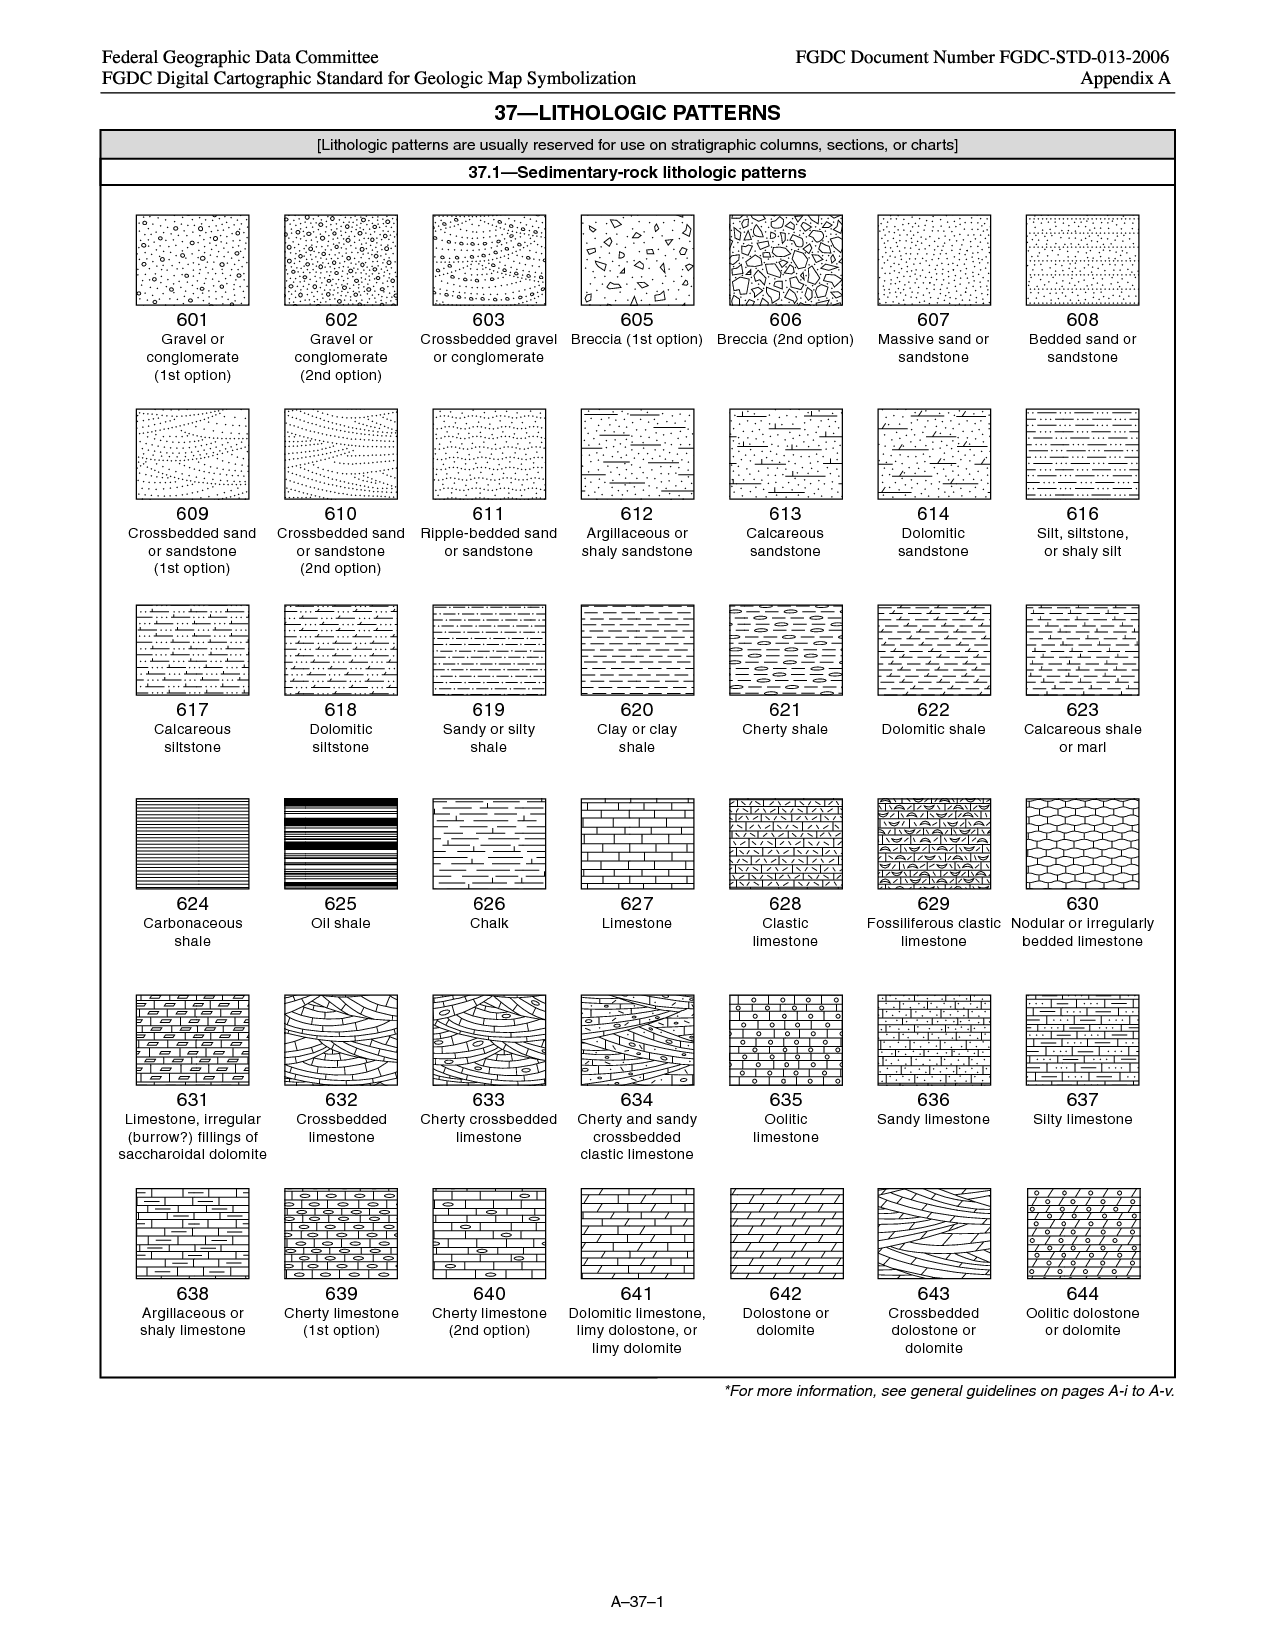 Lithographic Patterns For Sedimetry Rock Federal Geographic Data